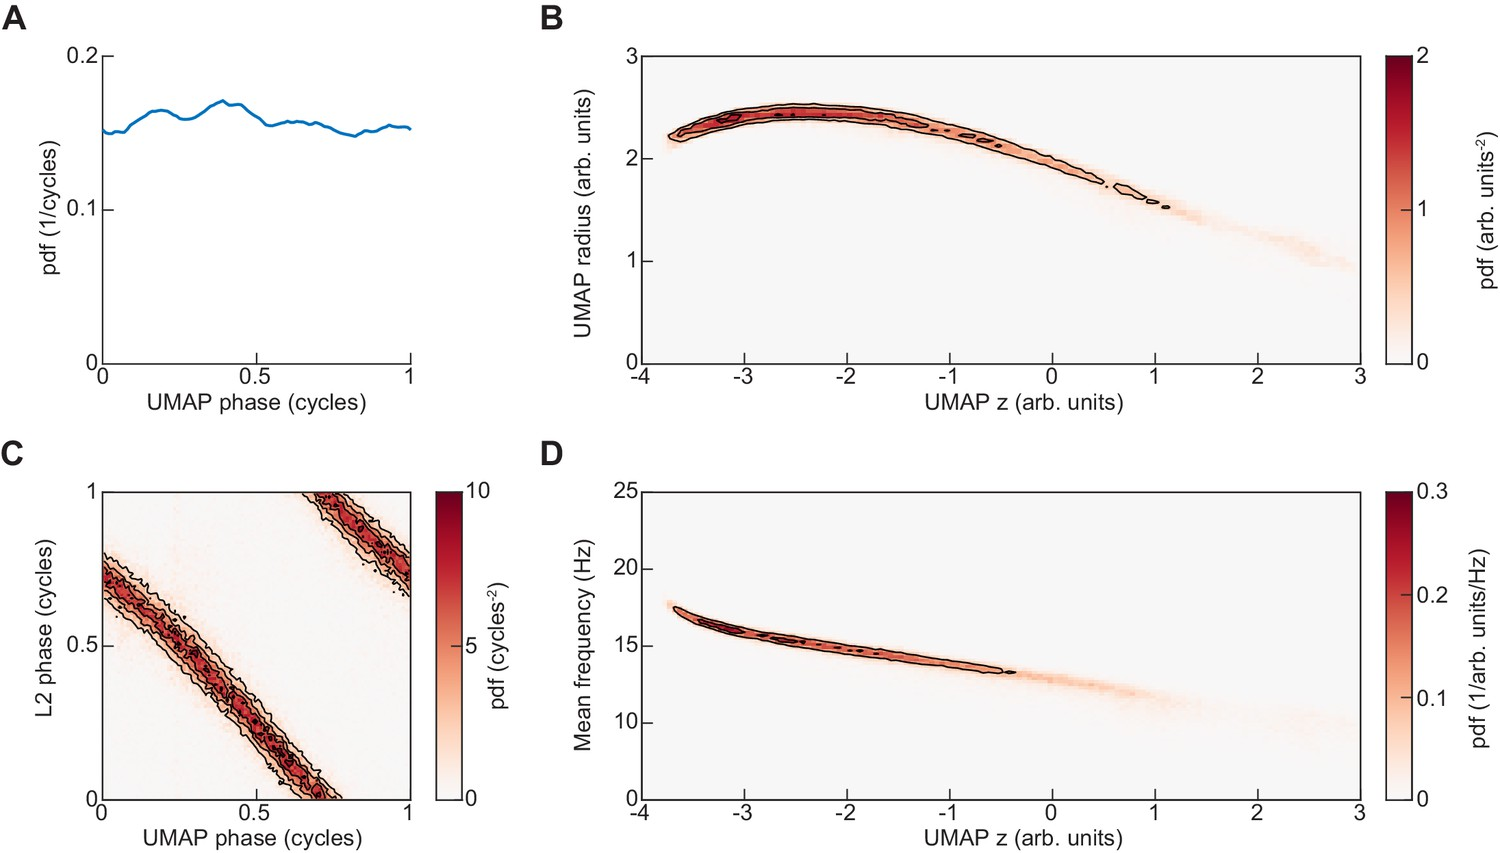 The manifold structure of limb coordination in walking